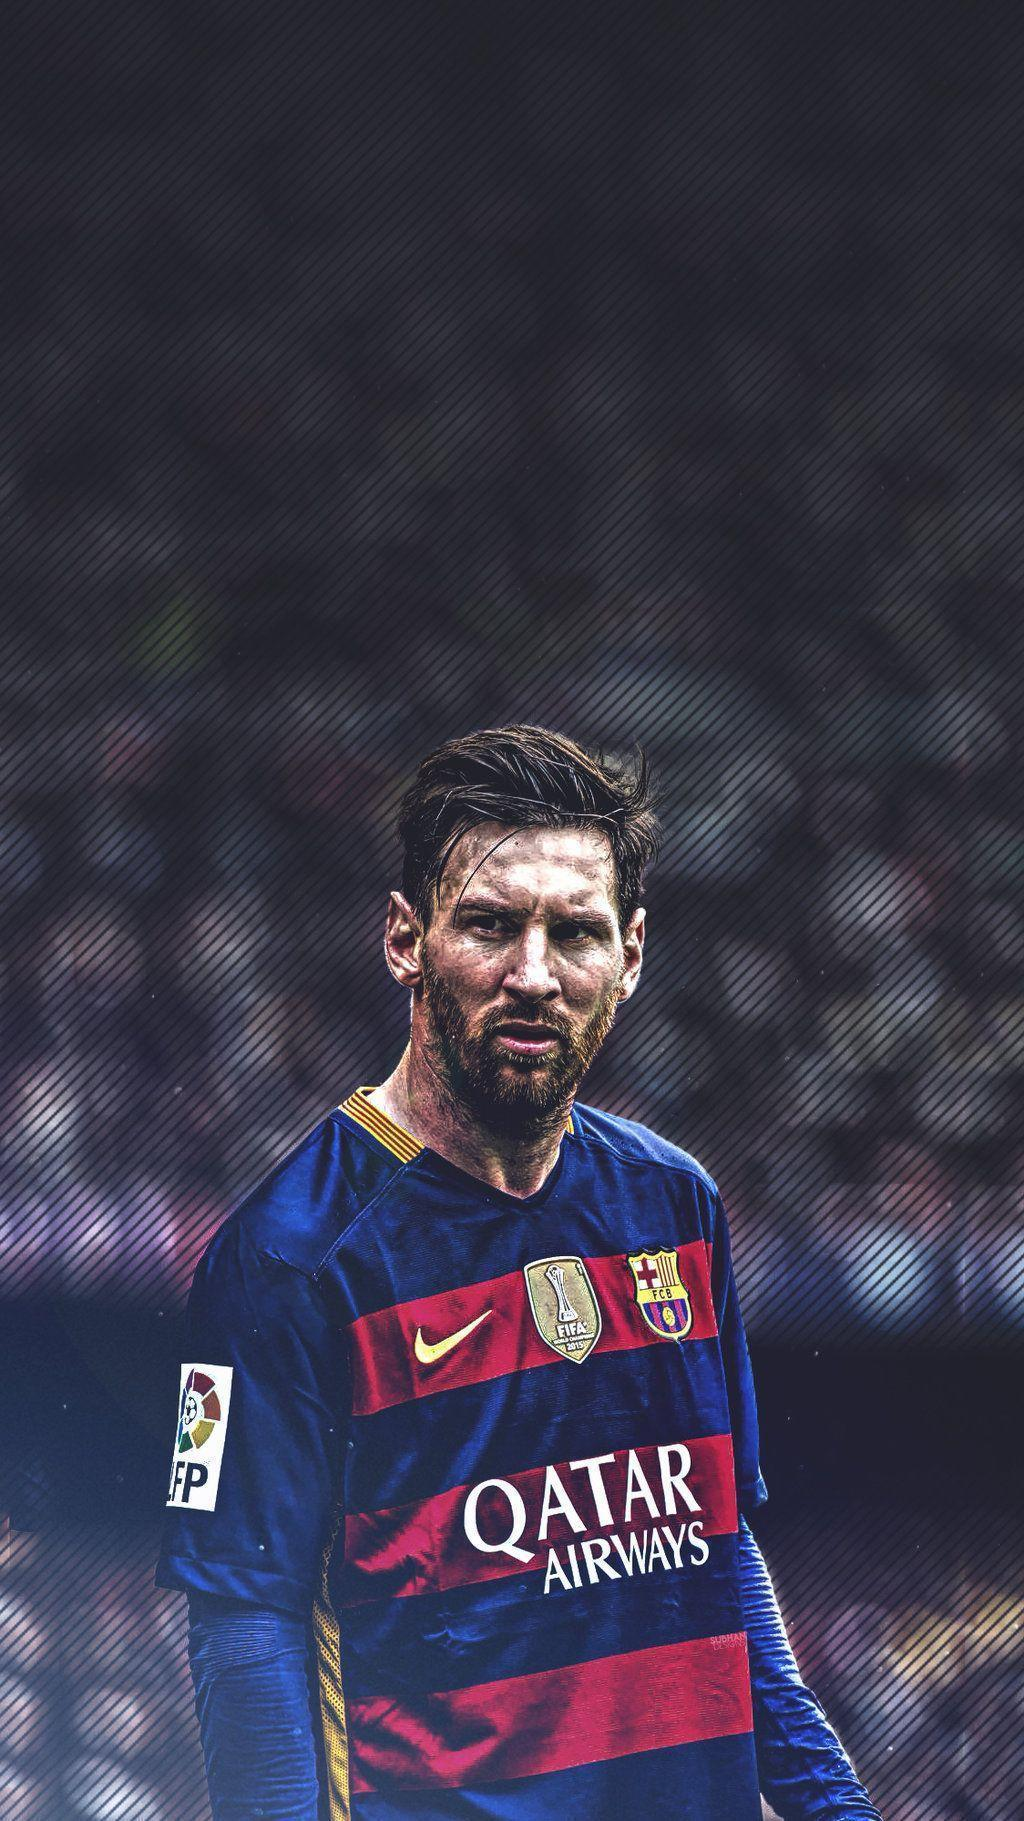 Leo Messi Hd Wallpapers Top Free Leo Messi Hd Backgrounds Wallpaperaccess